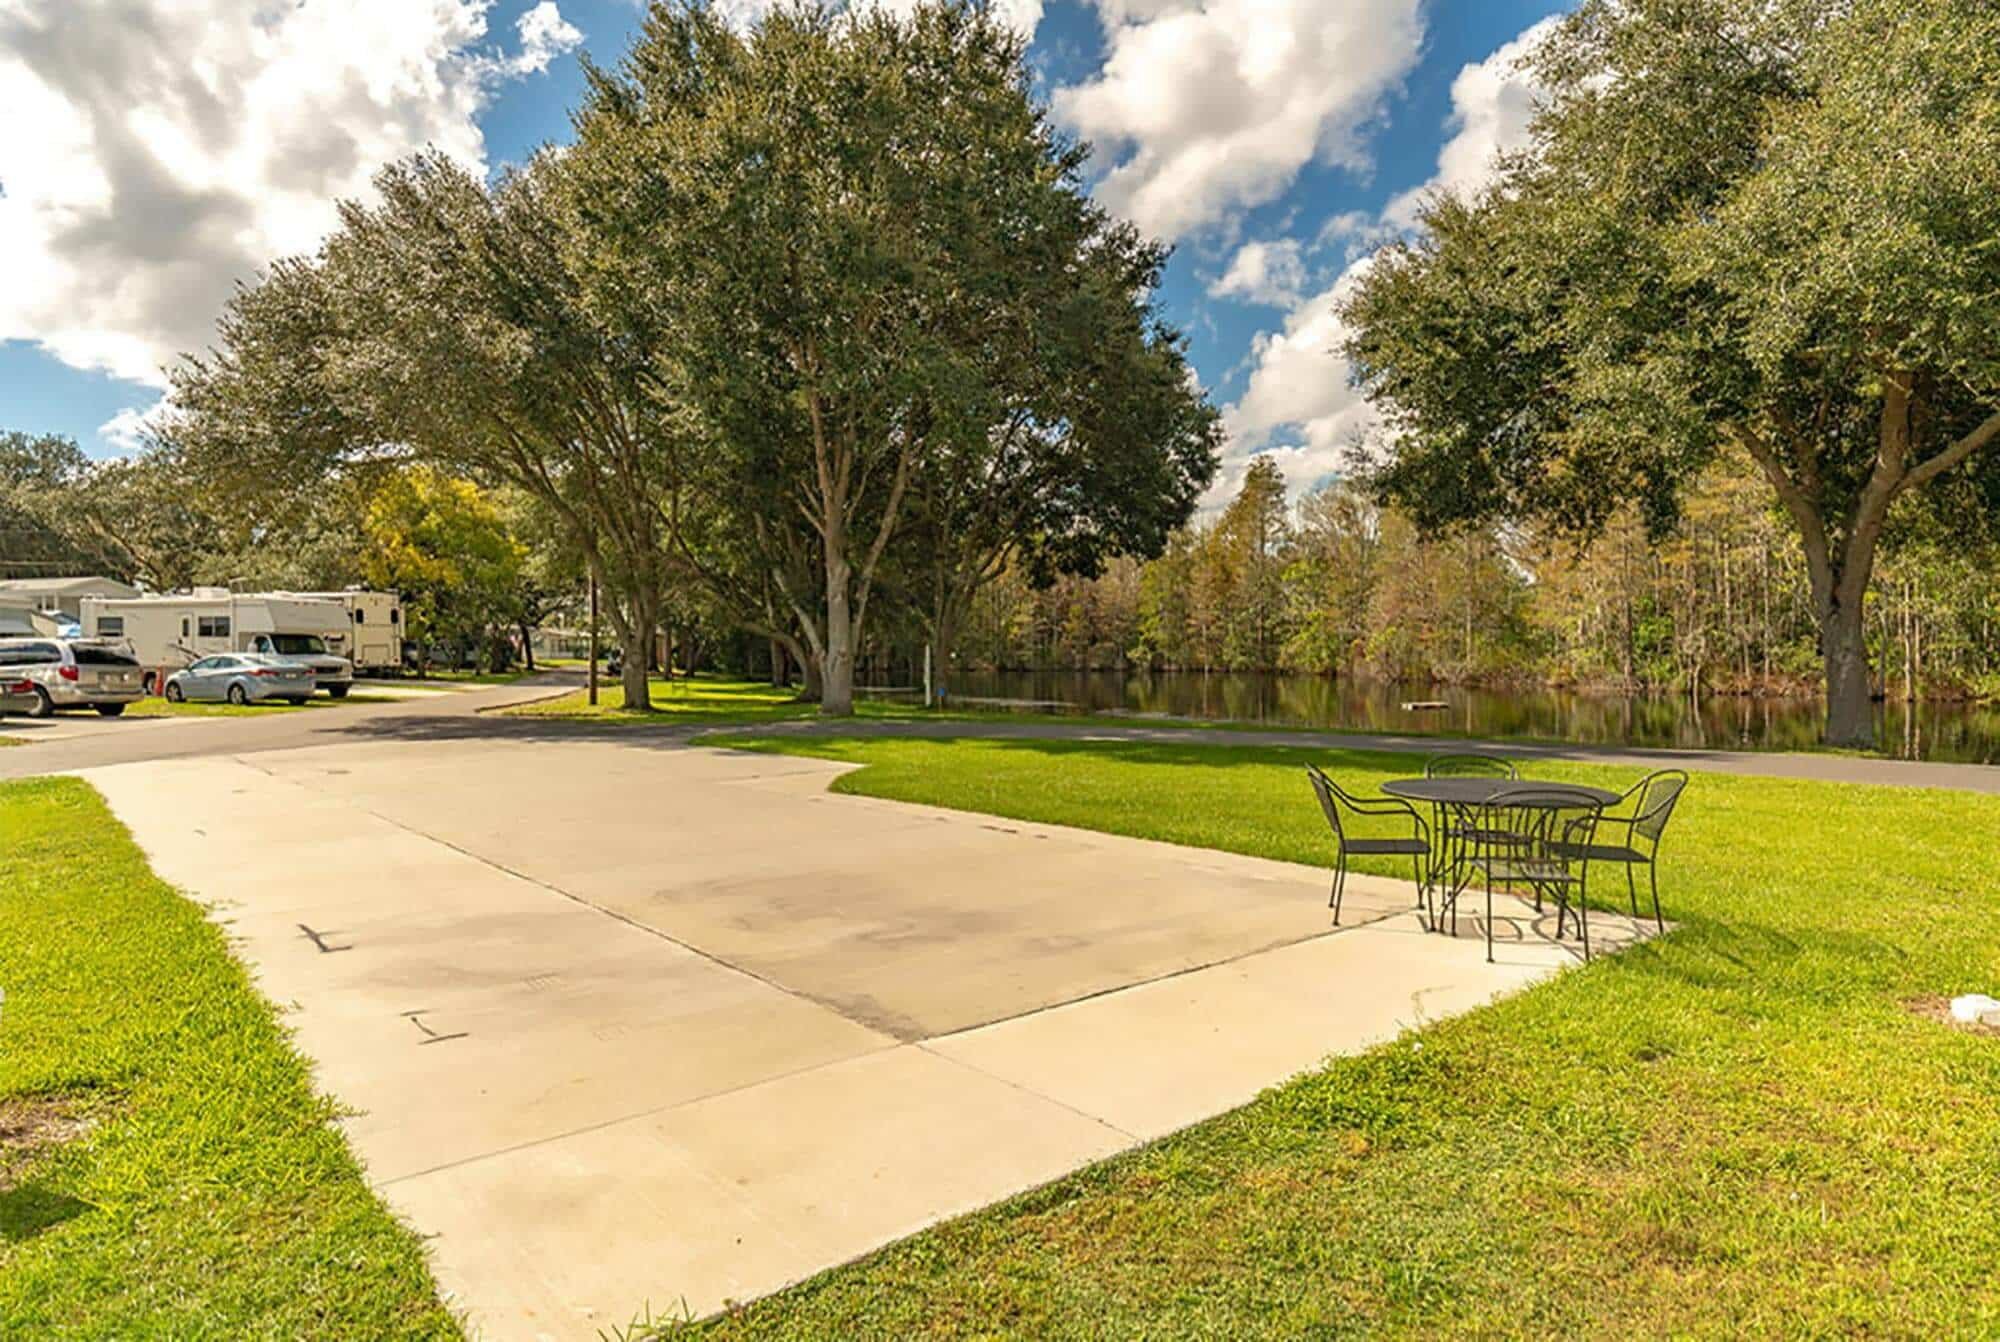 Kissimmee South RV Resort concrete back-in pad with picnic table and lake views.